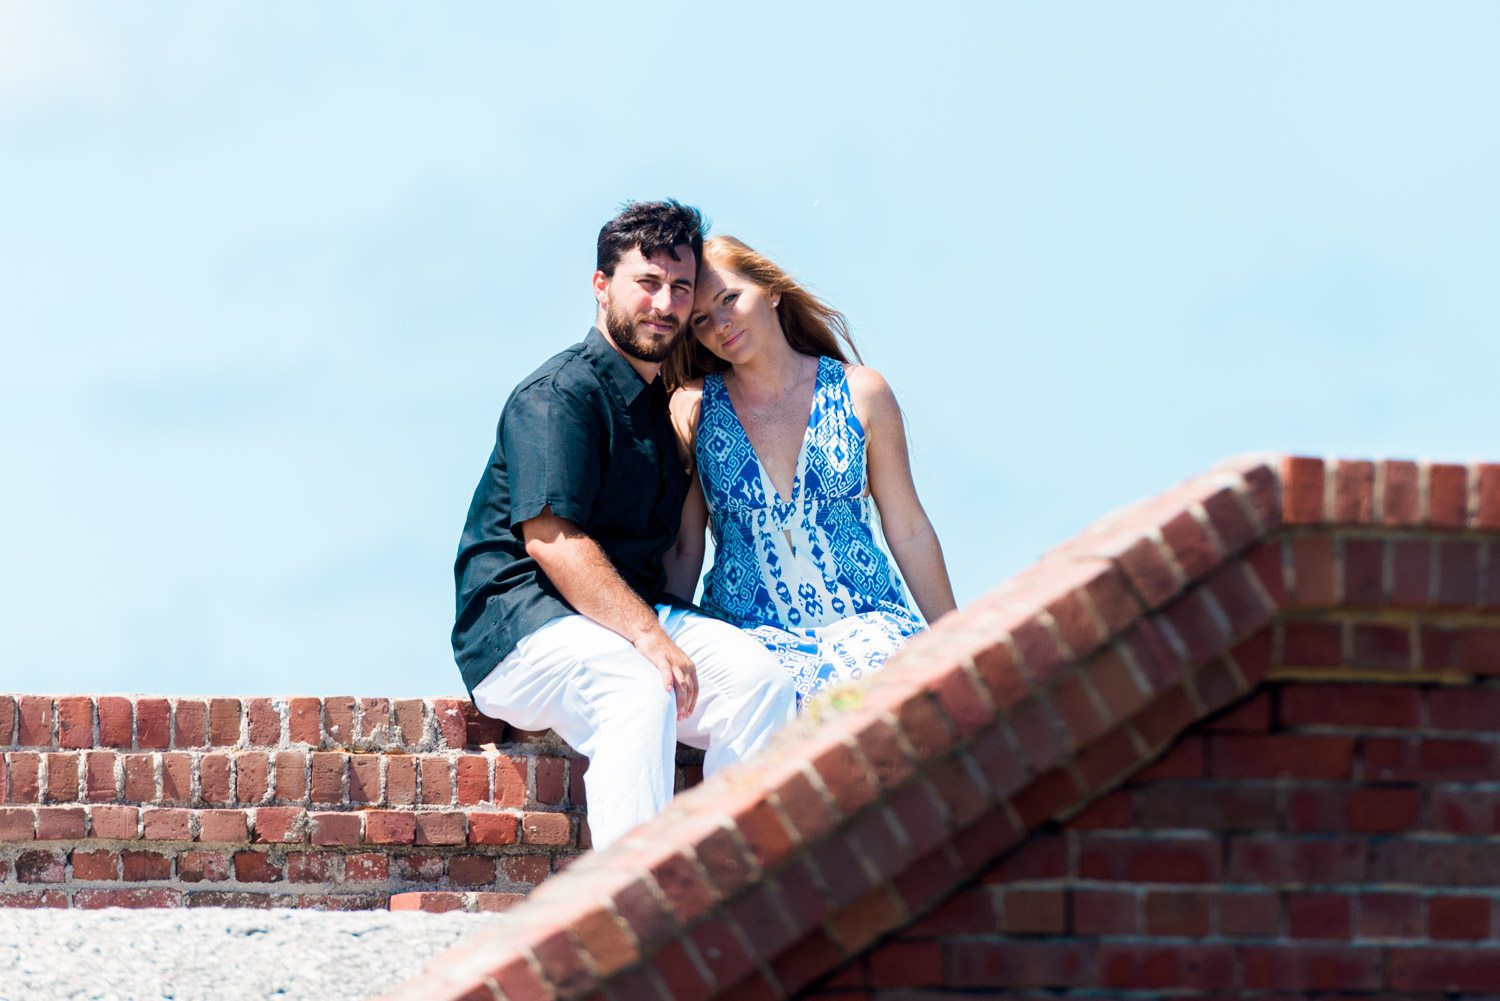 Katherine Oscar Engagement Photos Dry Tortugas 50 - Island Adventure Engagement Session - Dry Tortugas National Park and Fort Jefferson